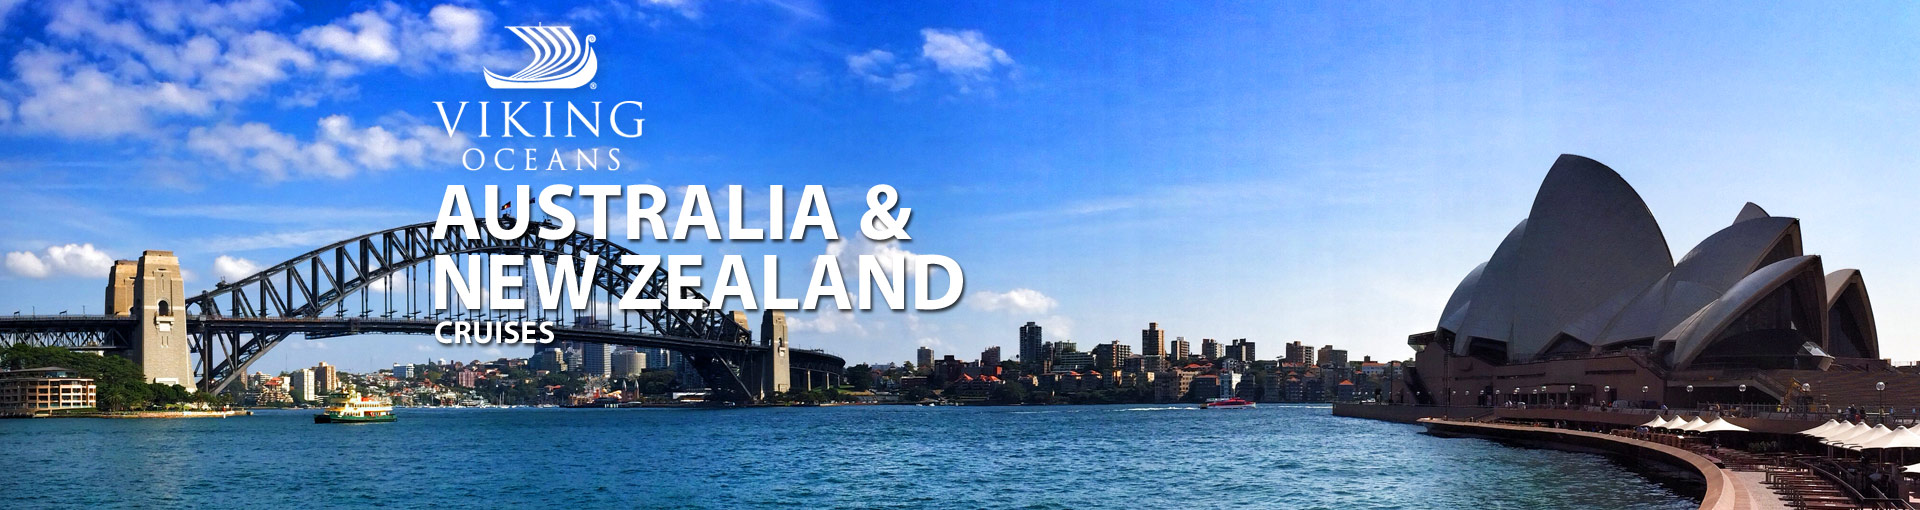 Viking Oceans Australia and New Zealand Cruises